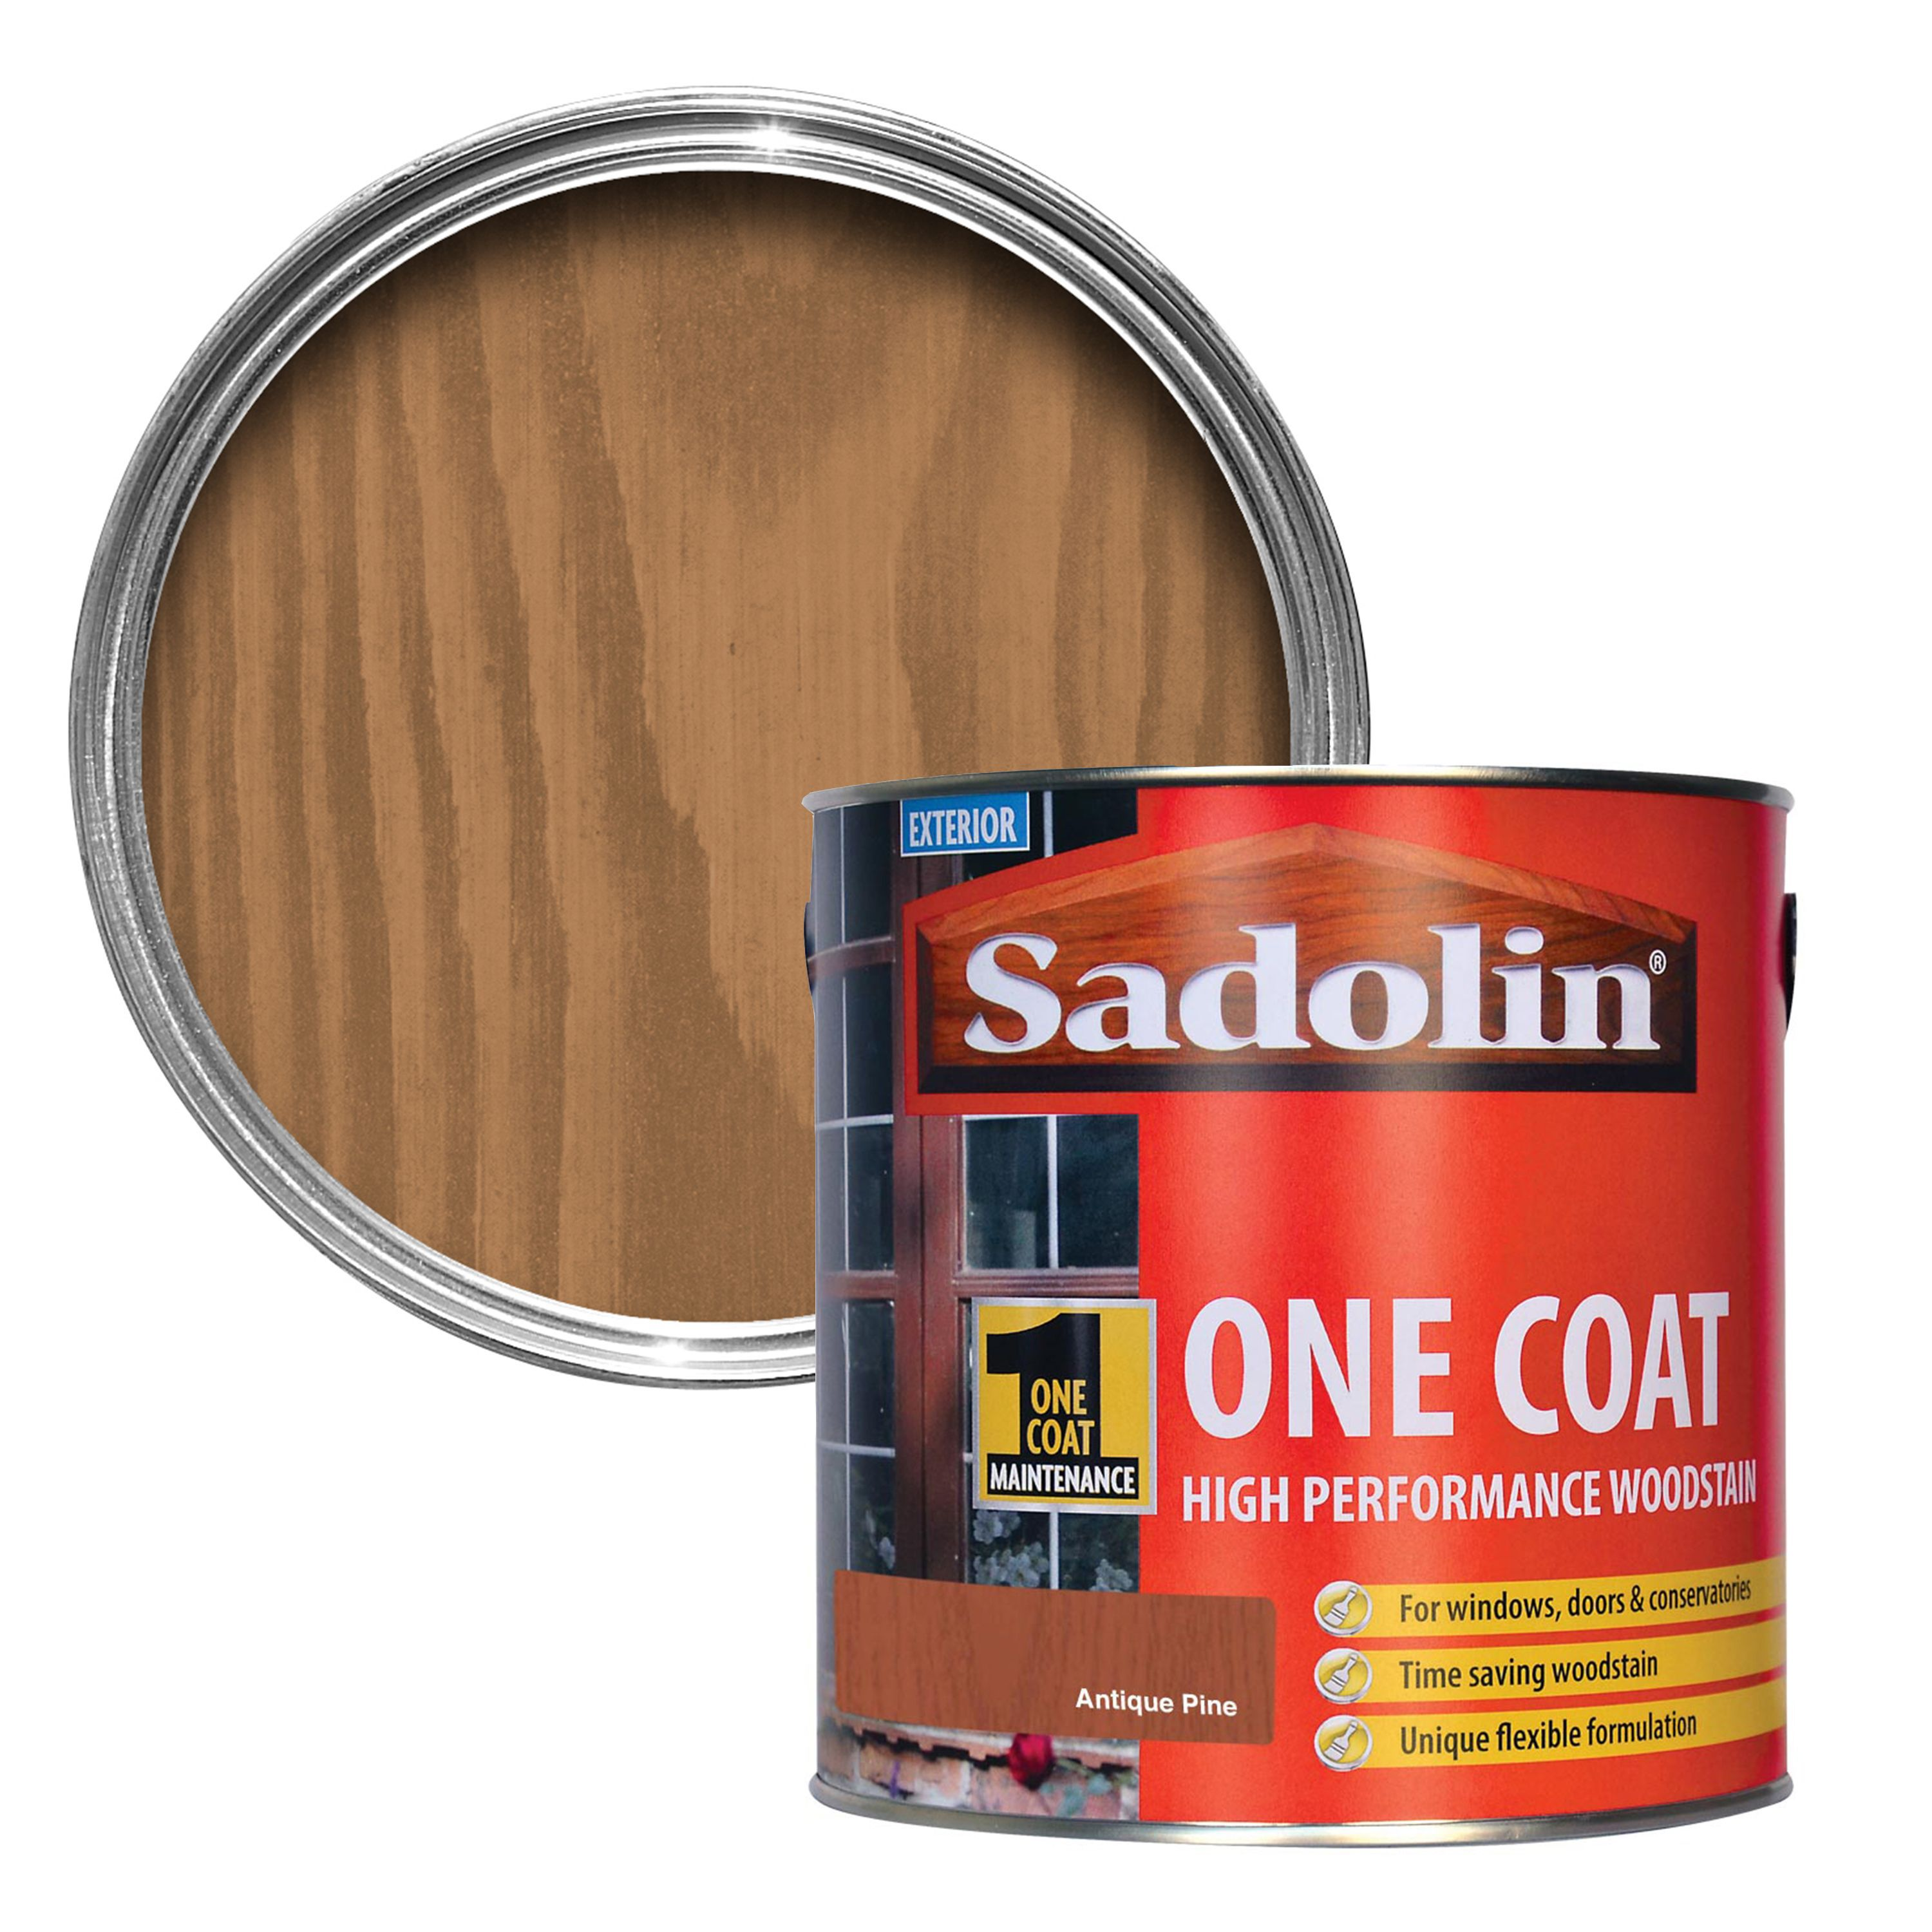 Sadolin antique pine semi gloss wood stain 2 5l departments diy at b q - Sadolin exterior wood paint image ...